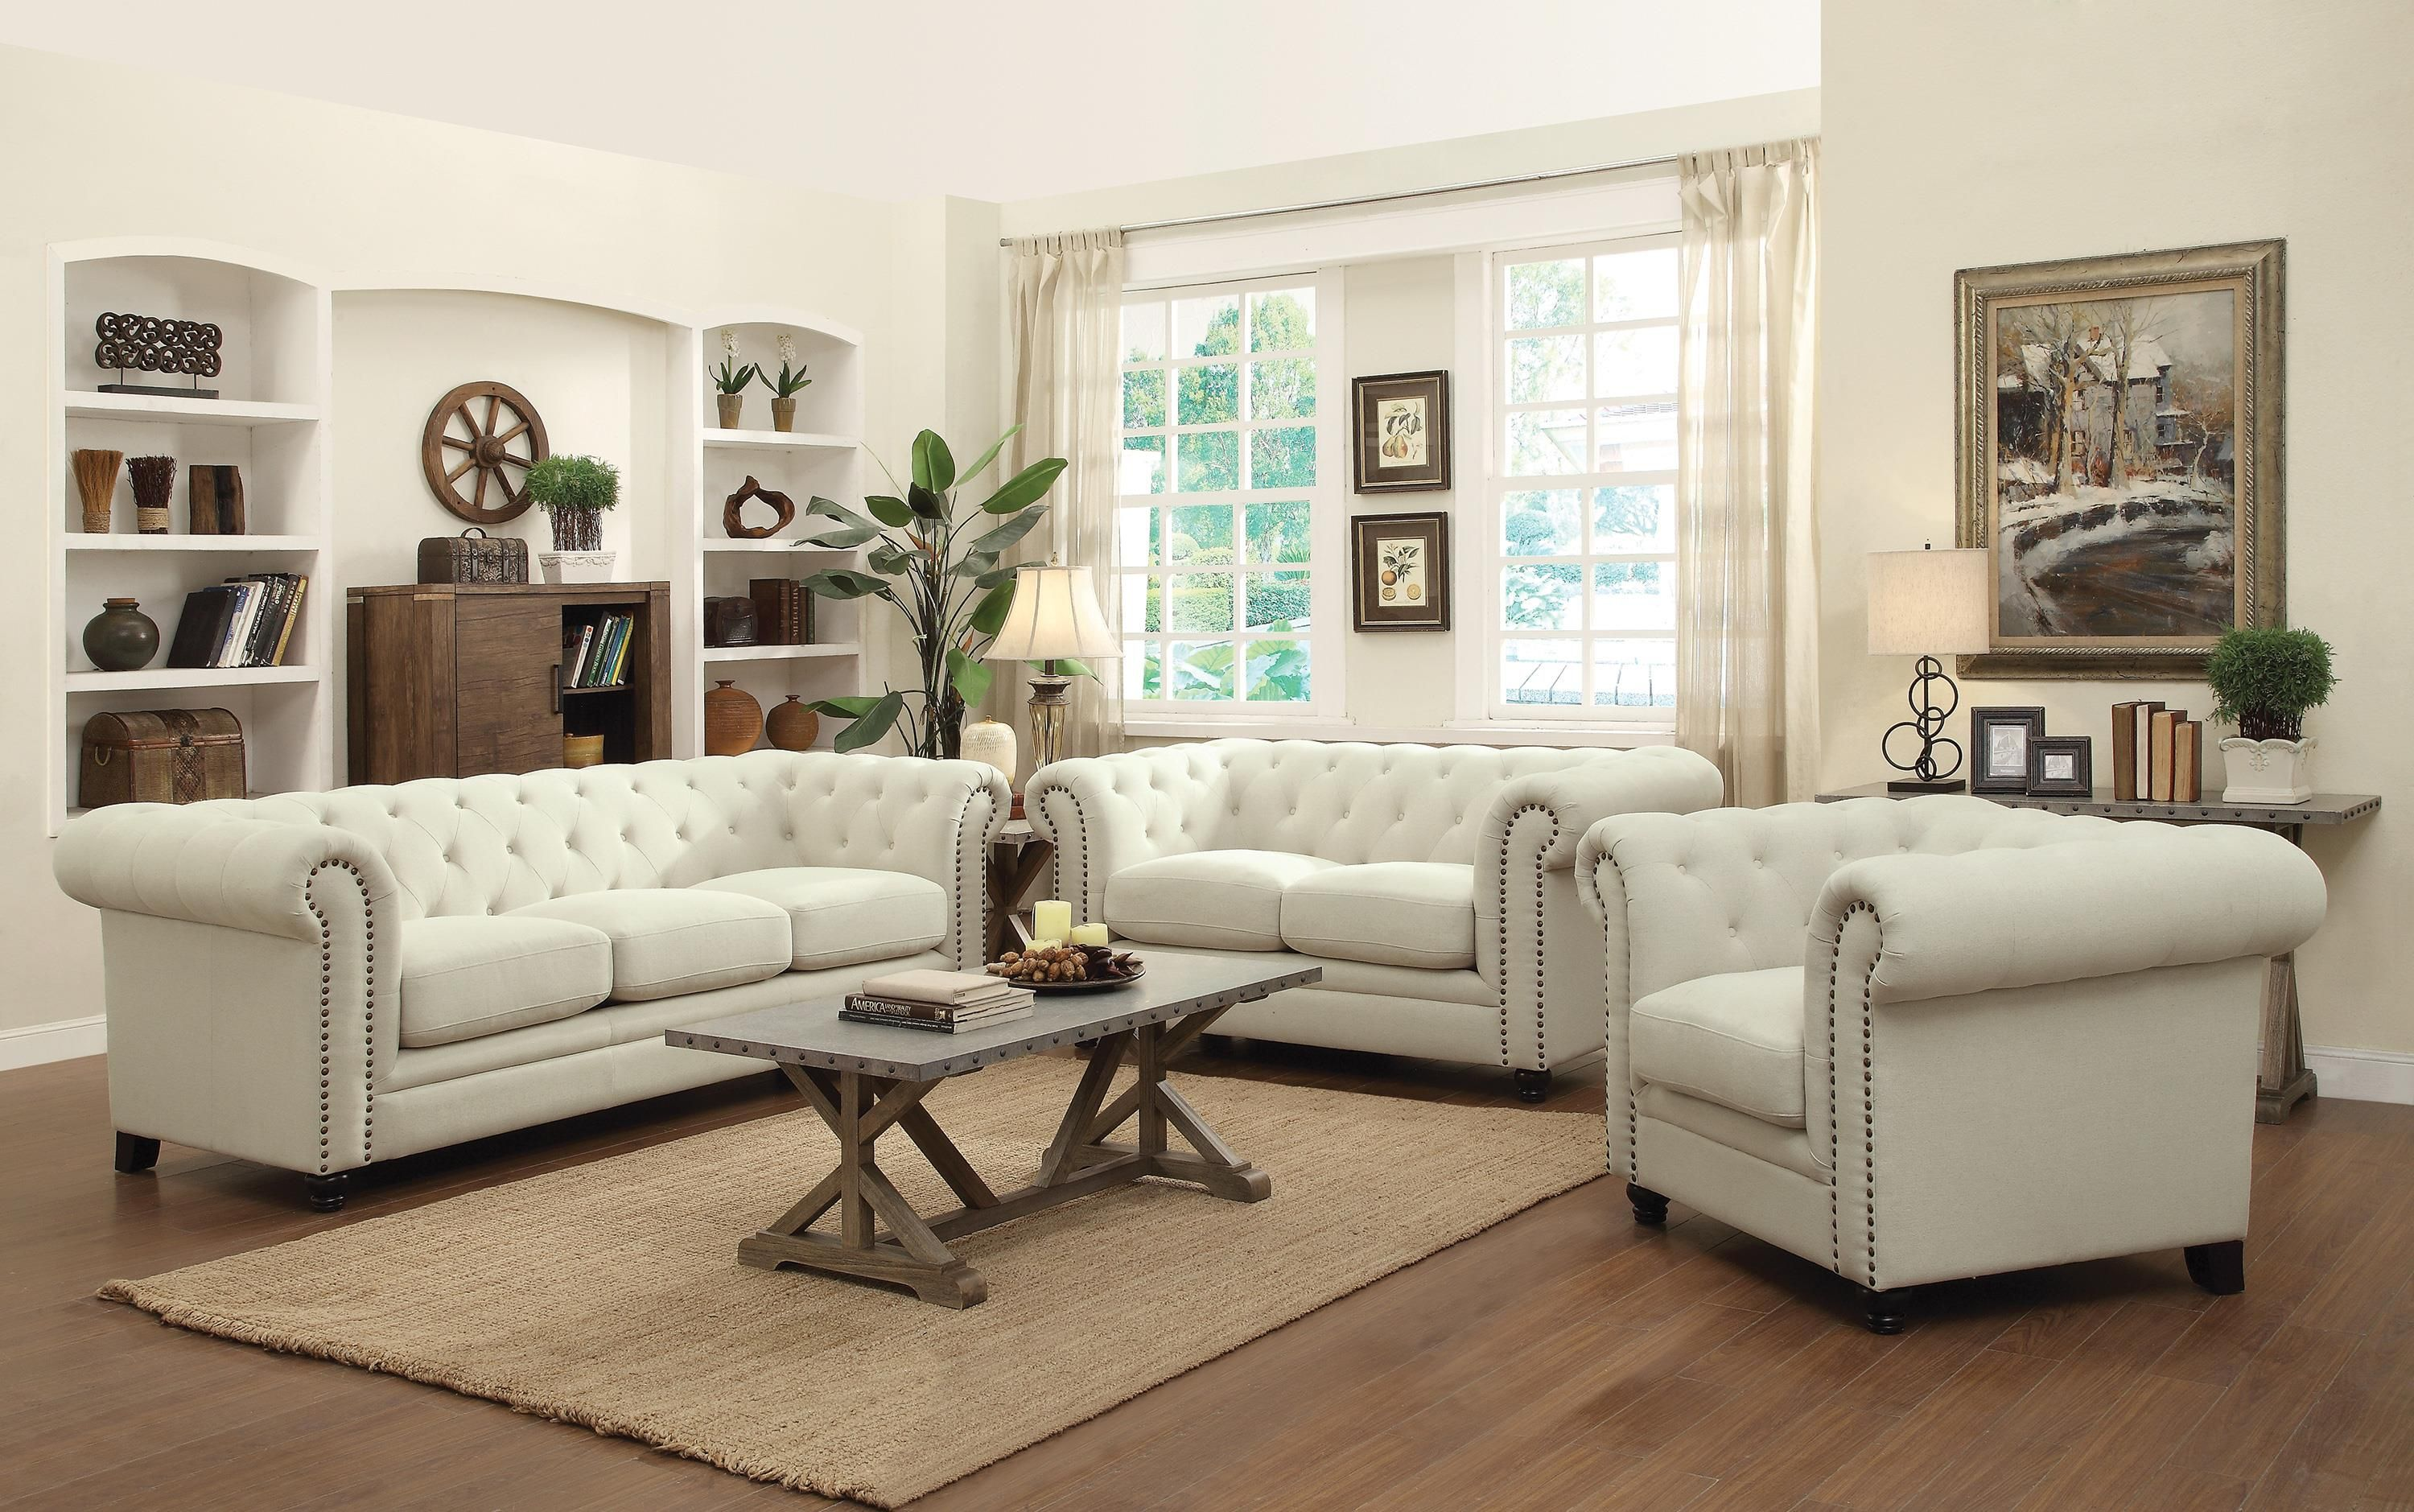 Here are five tips for choosing lighting for your living room. Roy__Oatmeal__54cc631b1b243.jpg | 3 piece living room set ...